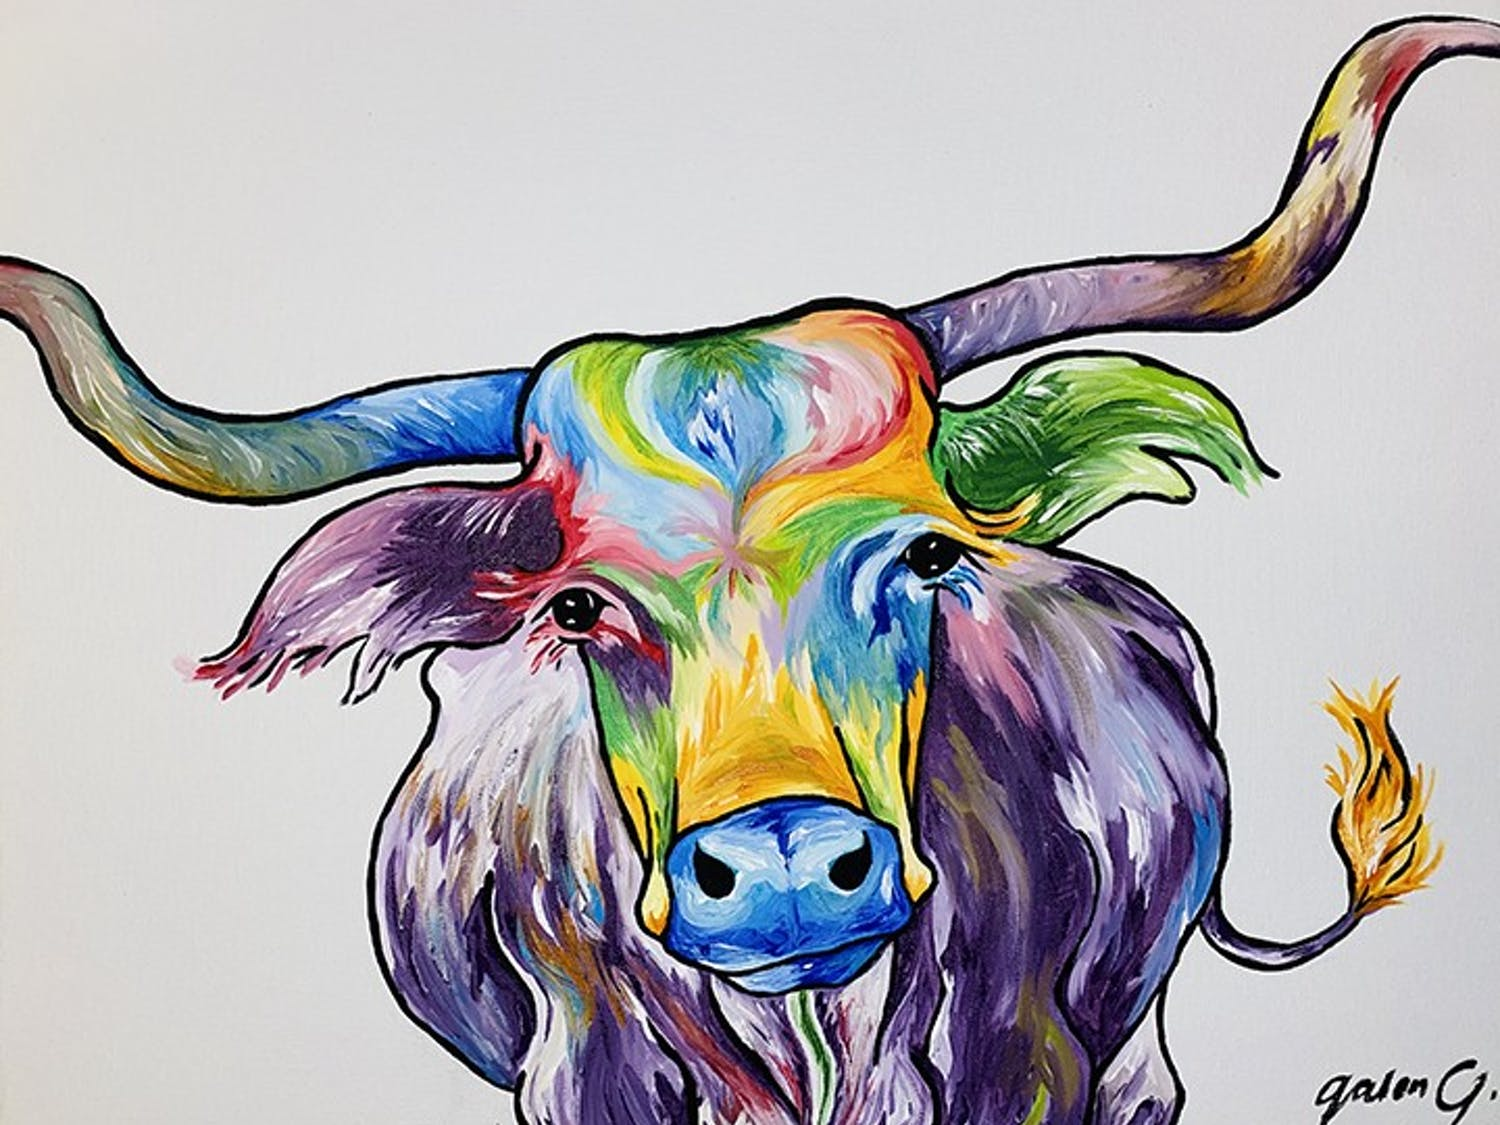 One of Jennings many projects depicts a bull made up of many bright colors.